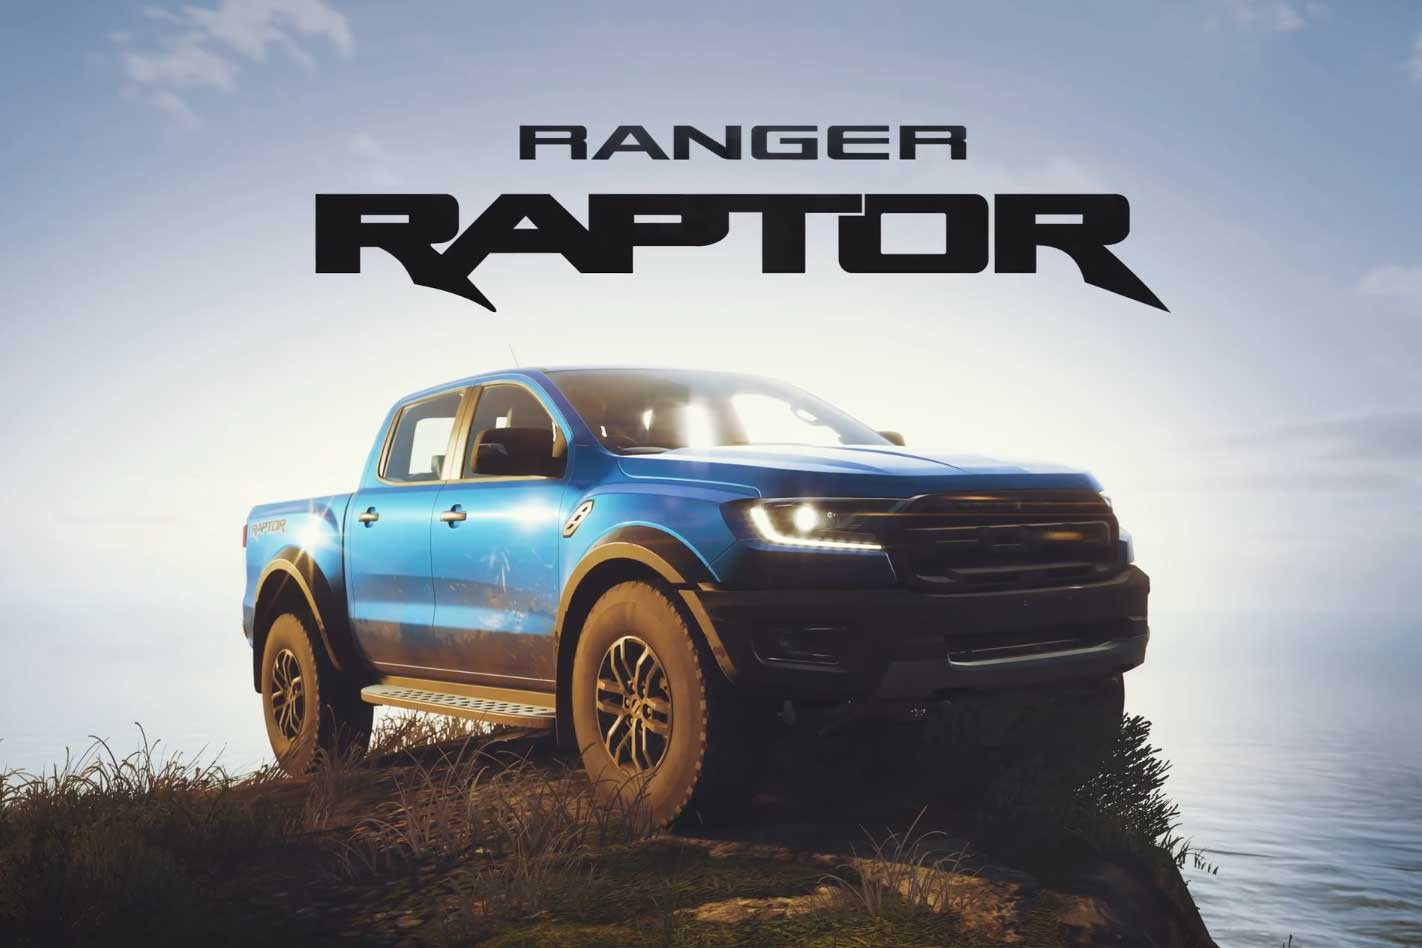 Ford Ranger Raptor now available on Forza Horizon 4